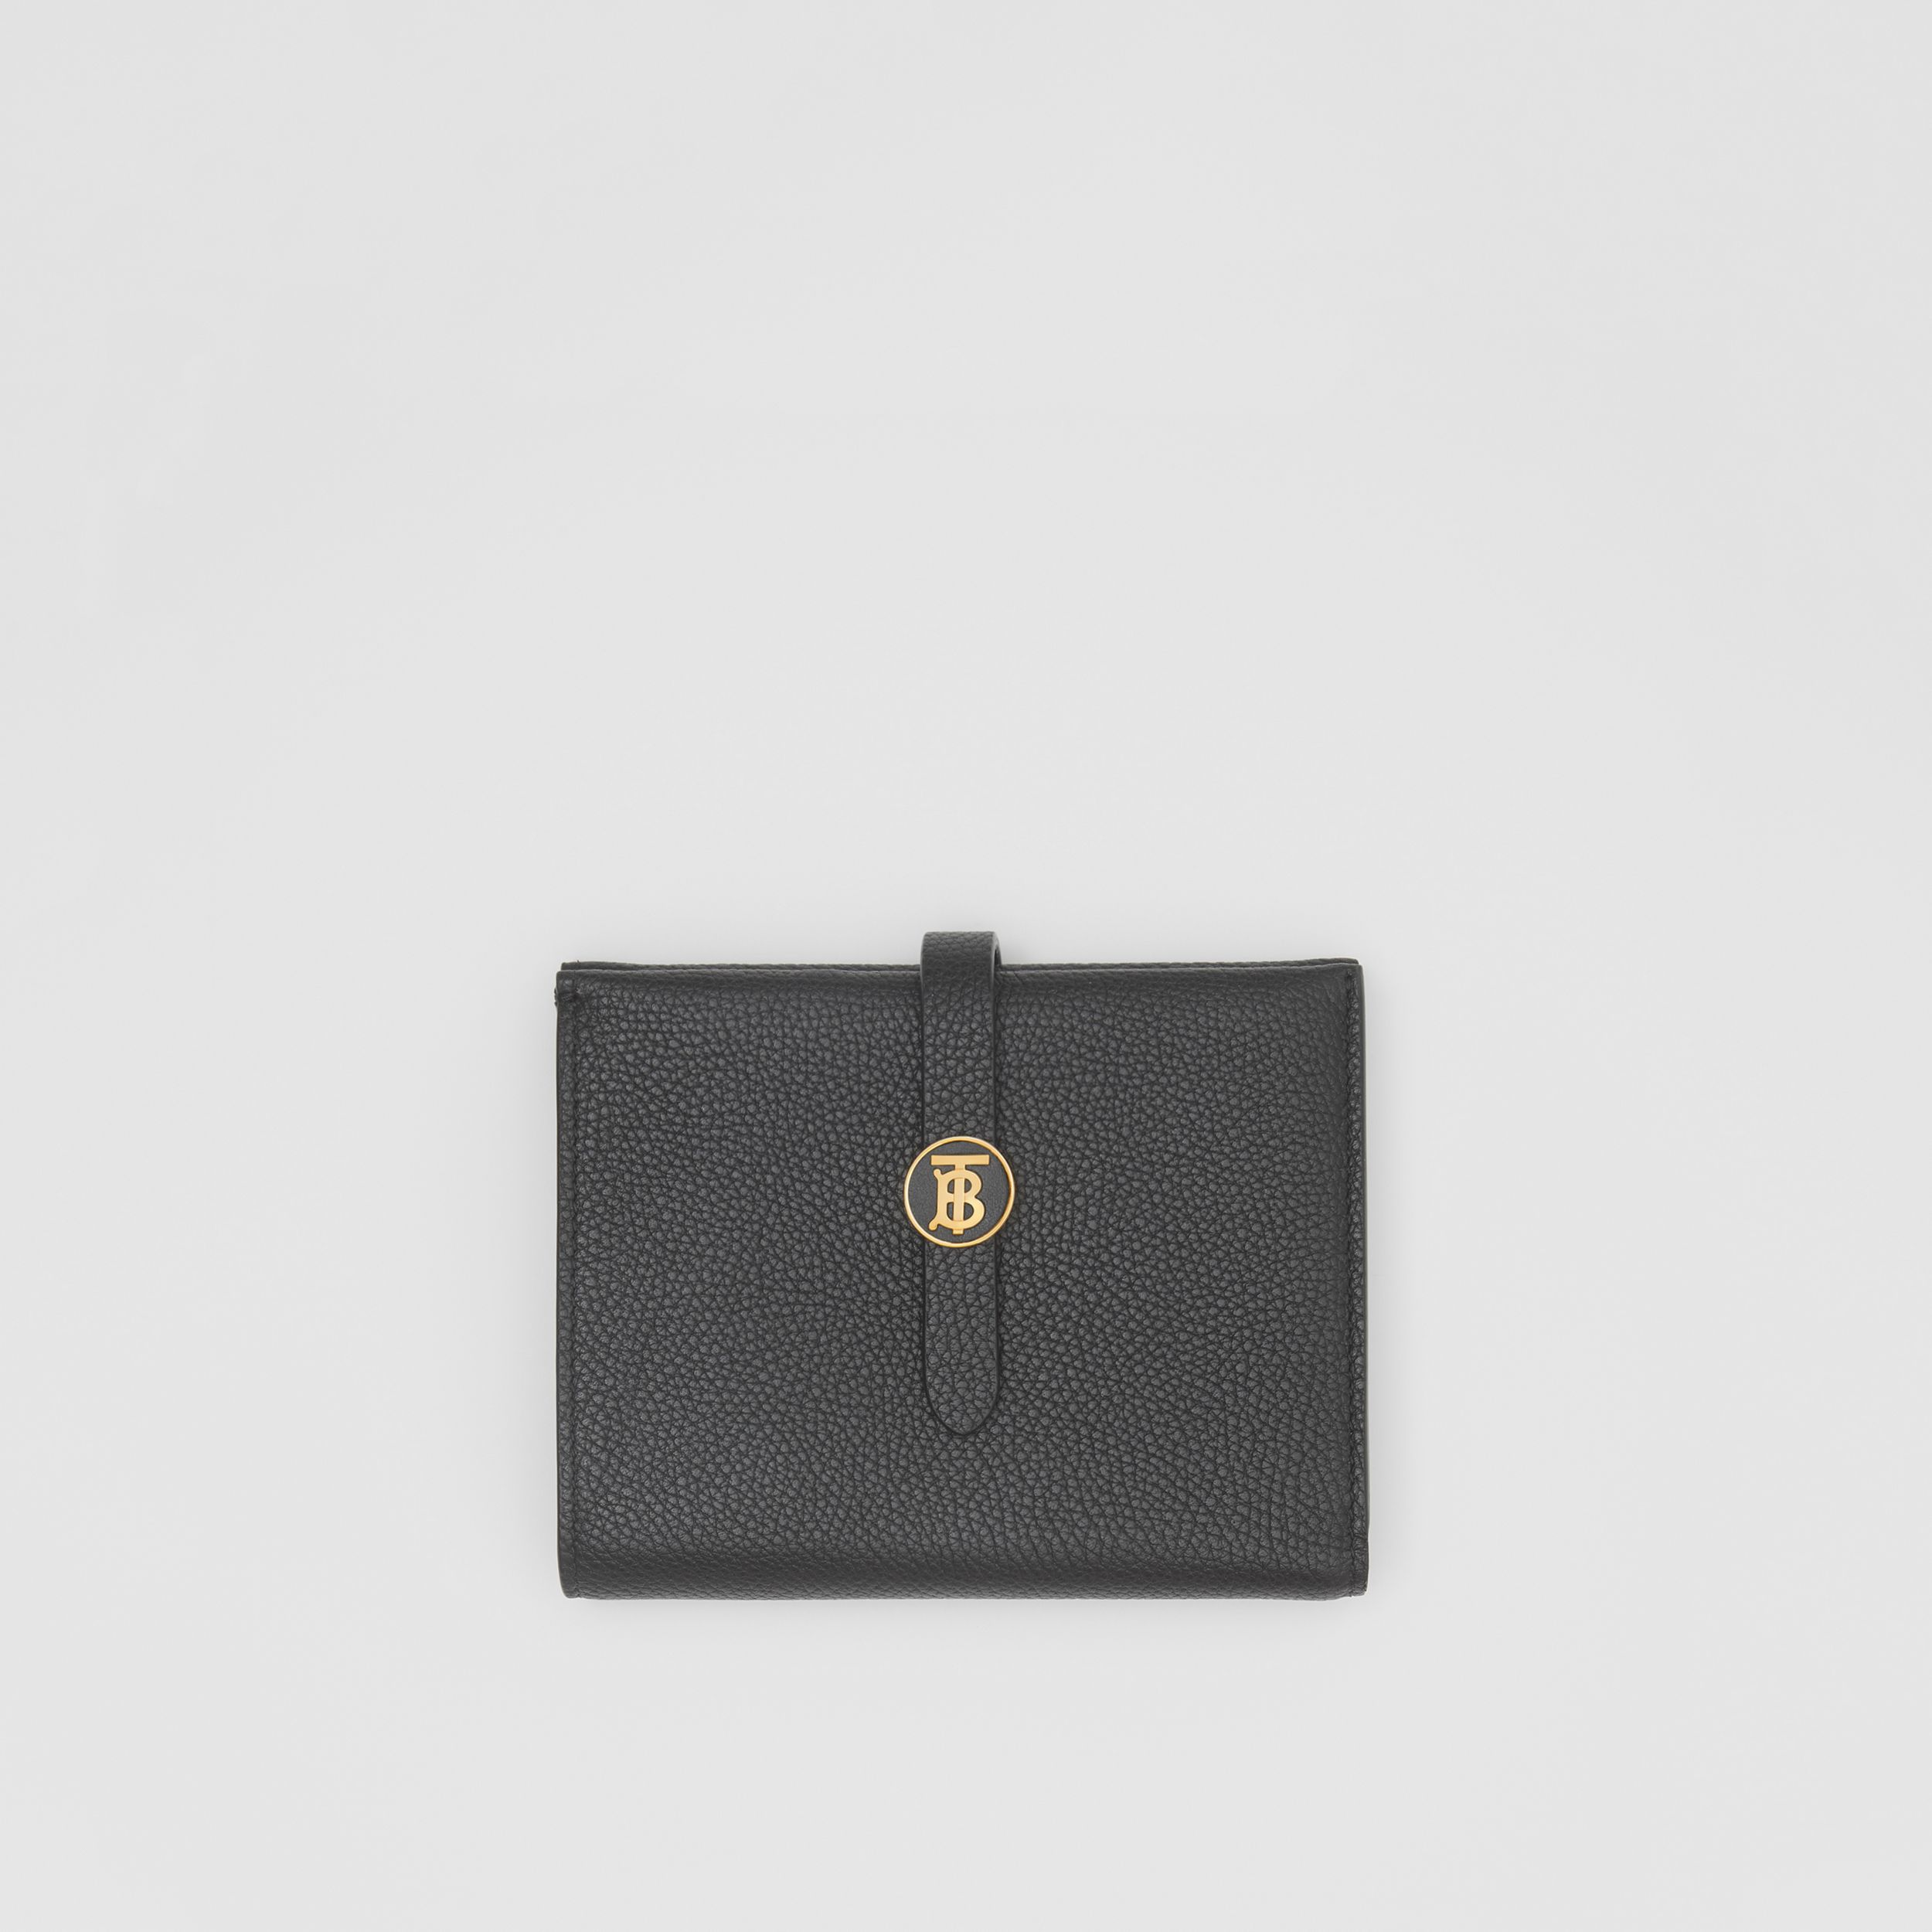 Monogram Motif Grainy Leather Folding Wallet in Black - Women | Burberry Hong Kong S.A.R. - 1